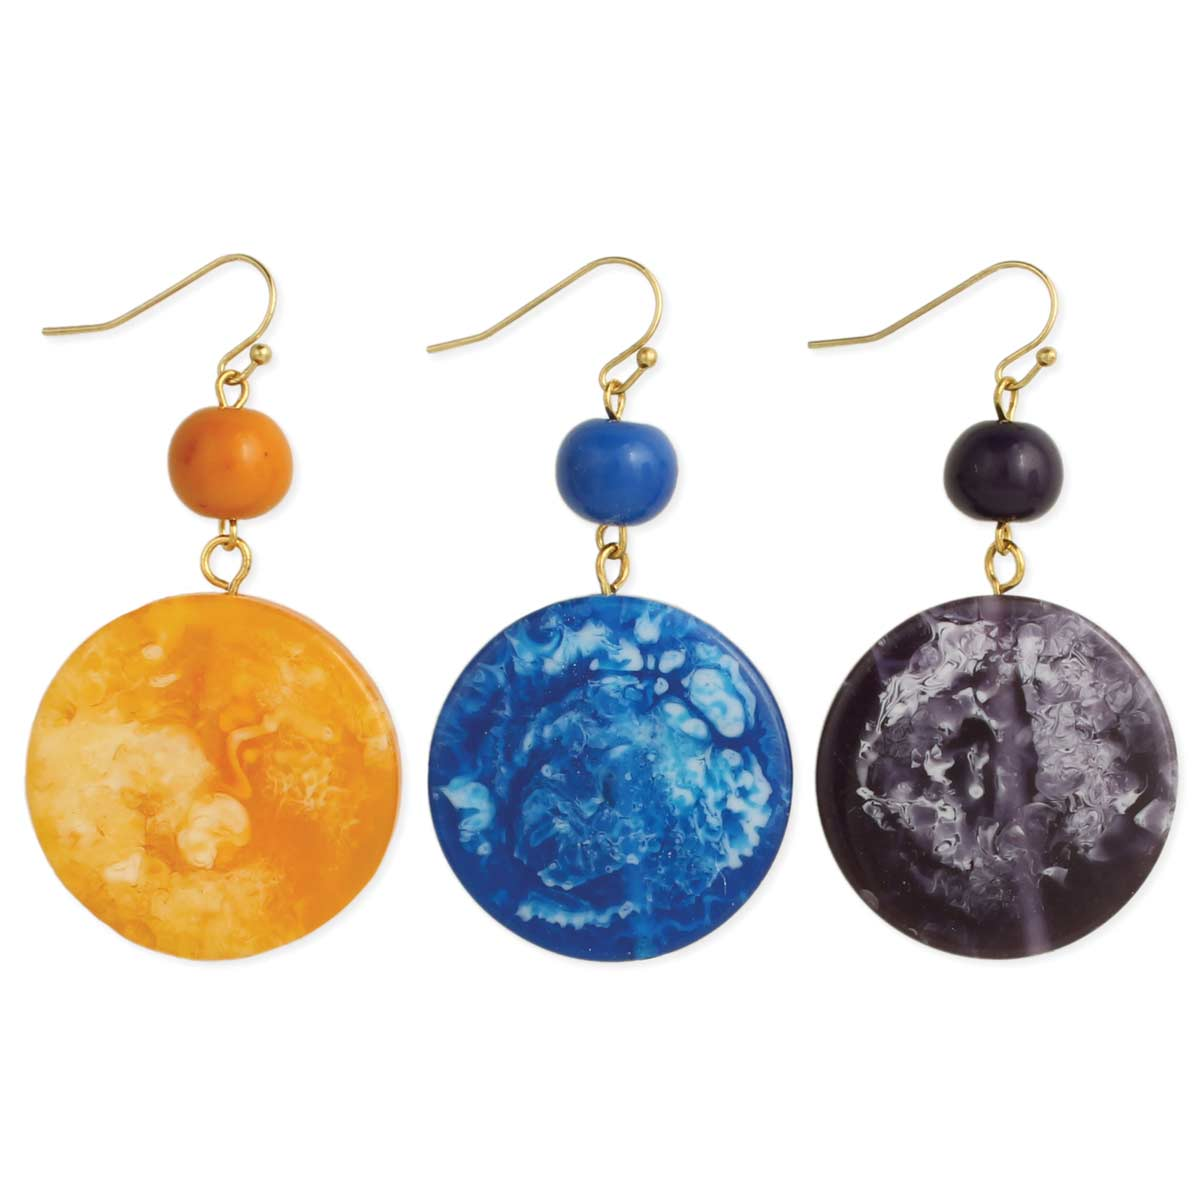 Round Marbled Resin Earrings